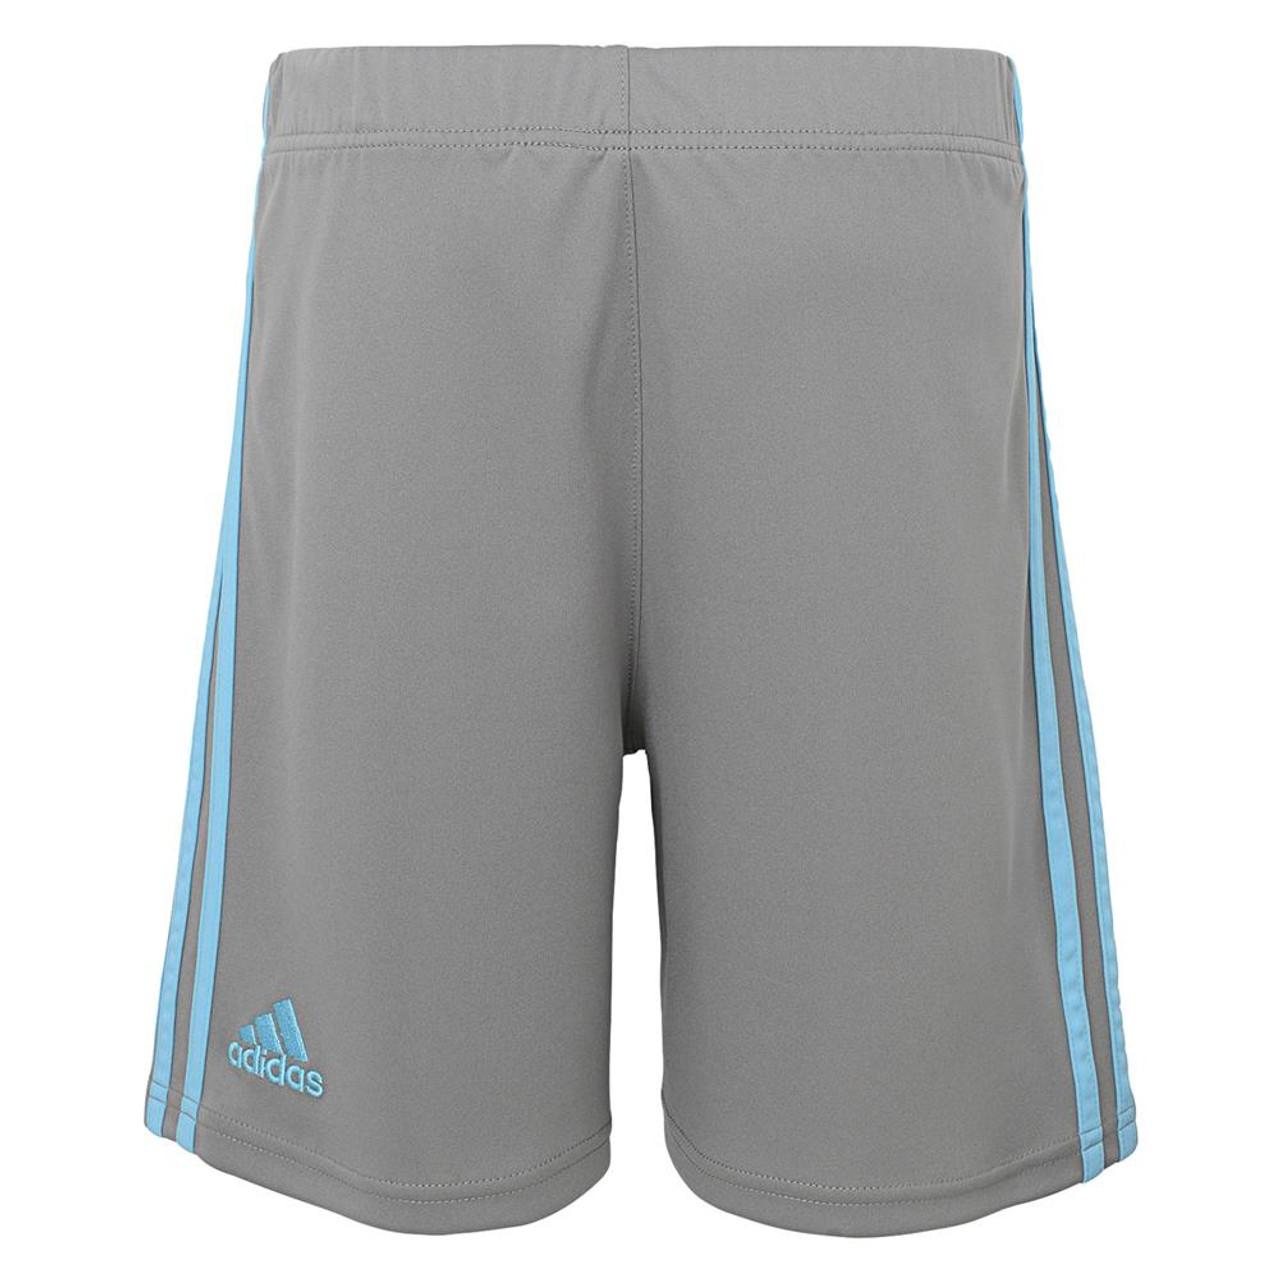 Youth Minnesota United FC Shorts Adidas Primary Gym Shorts